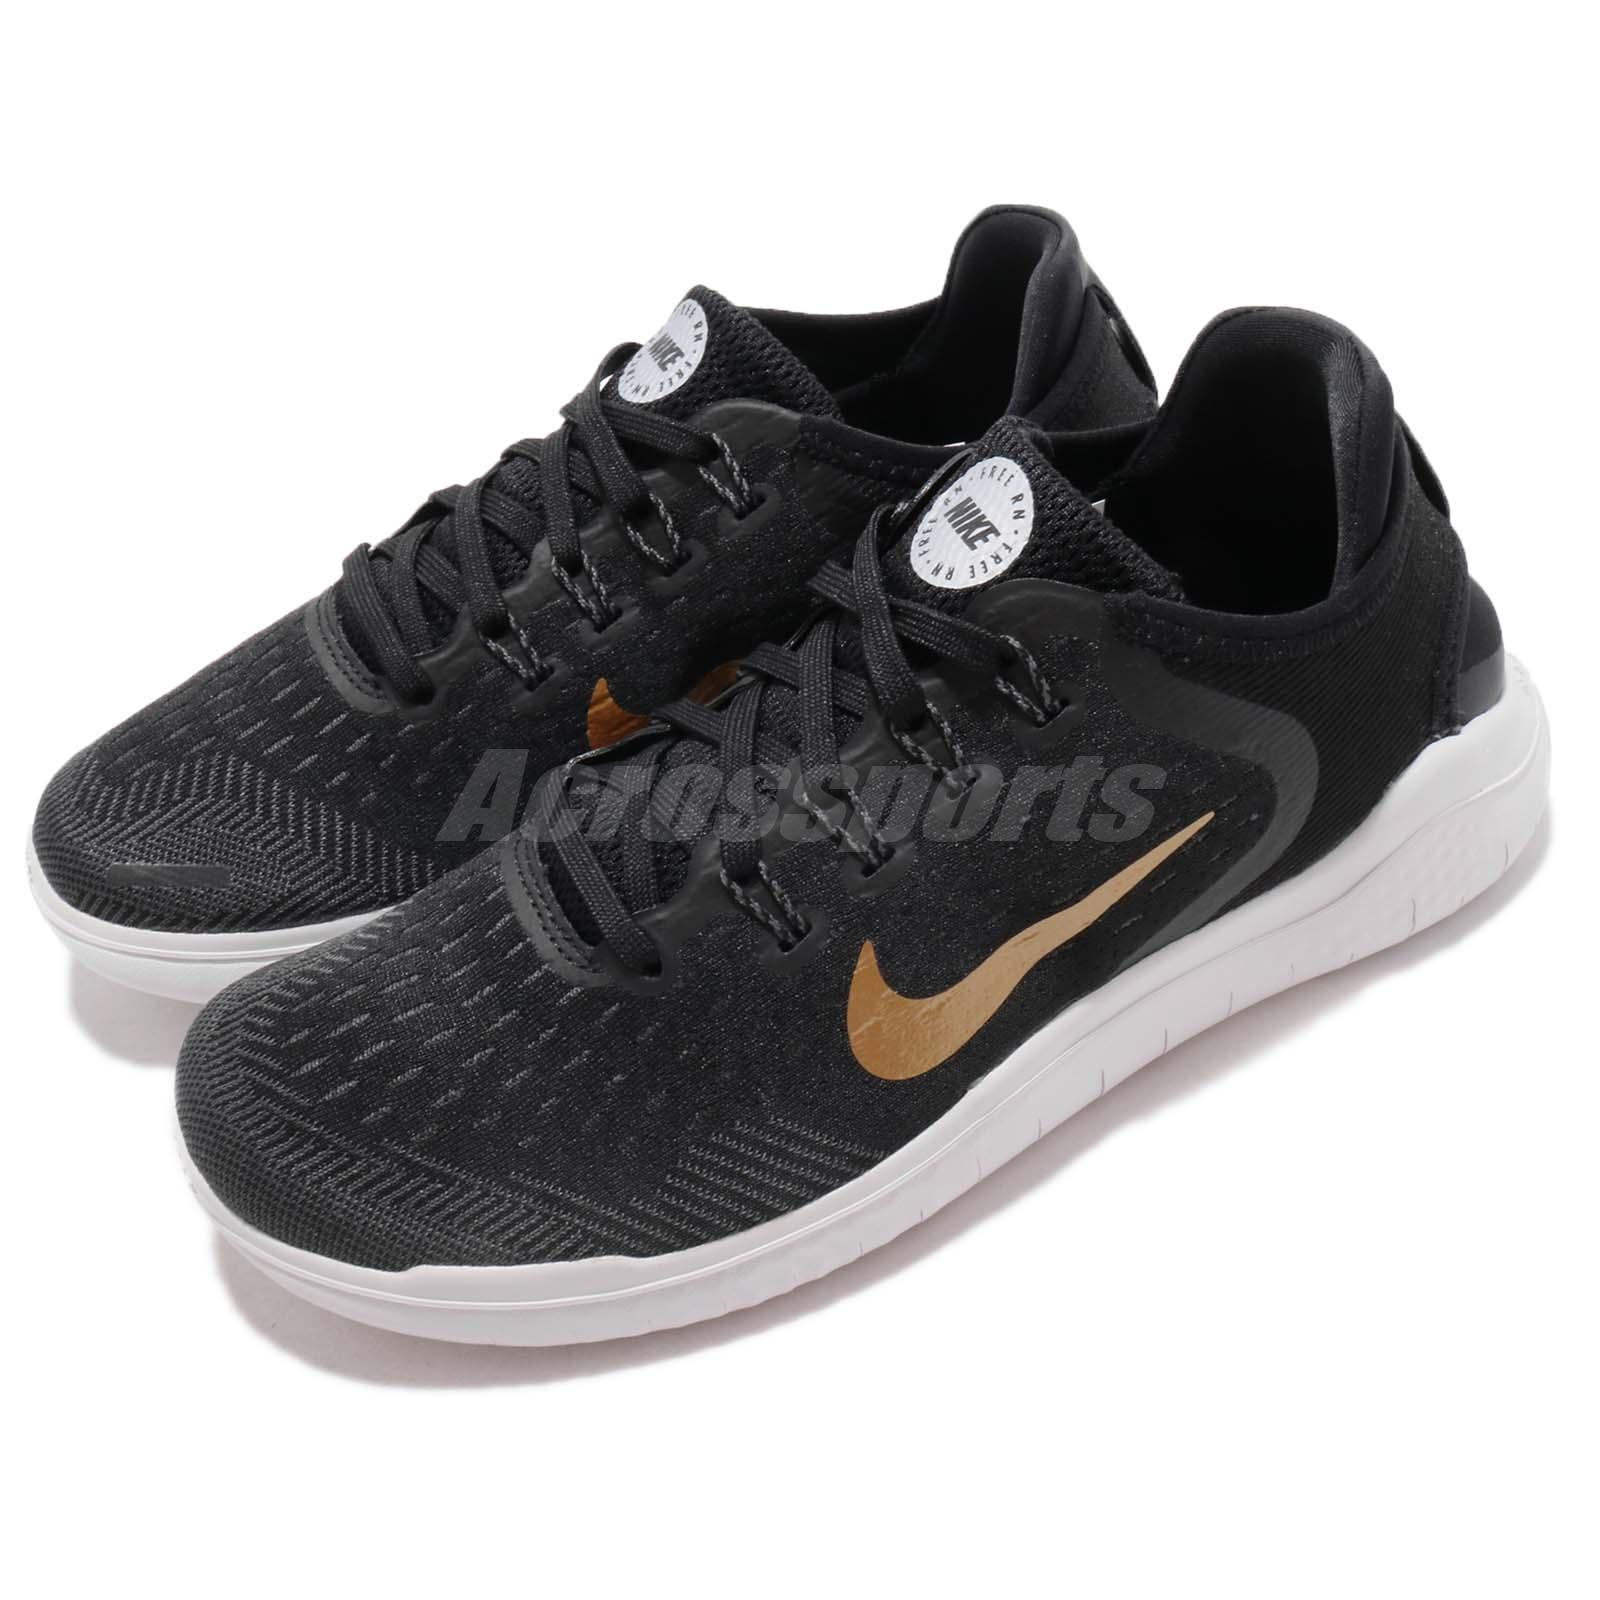 80d85a8ae3c6 Details about Nike Wmns Free RN 2018 Run Black Gold Women Running Shoes  Sneakers 942837-008